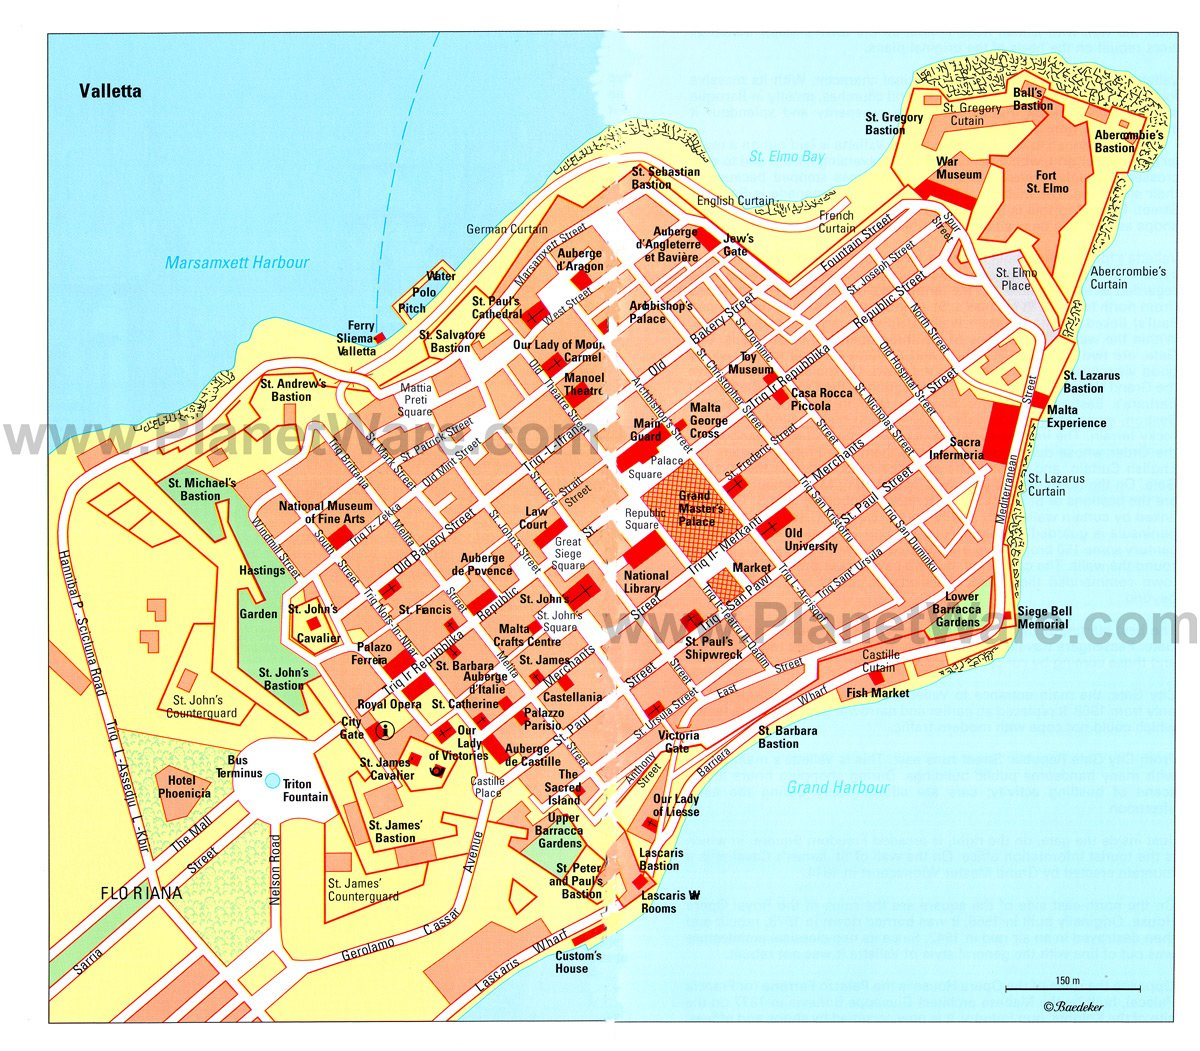 Valletta Map - Tourist Attractions